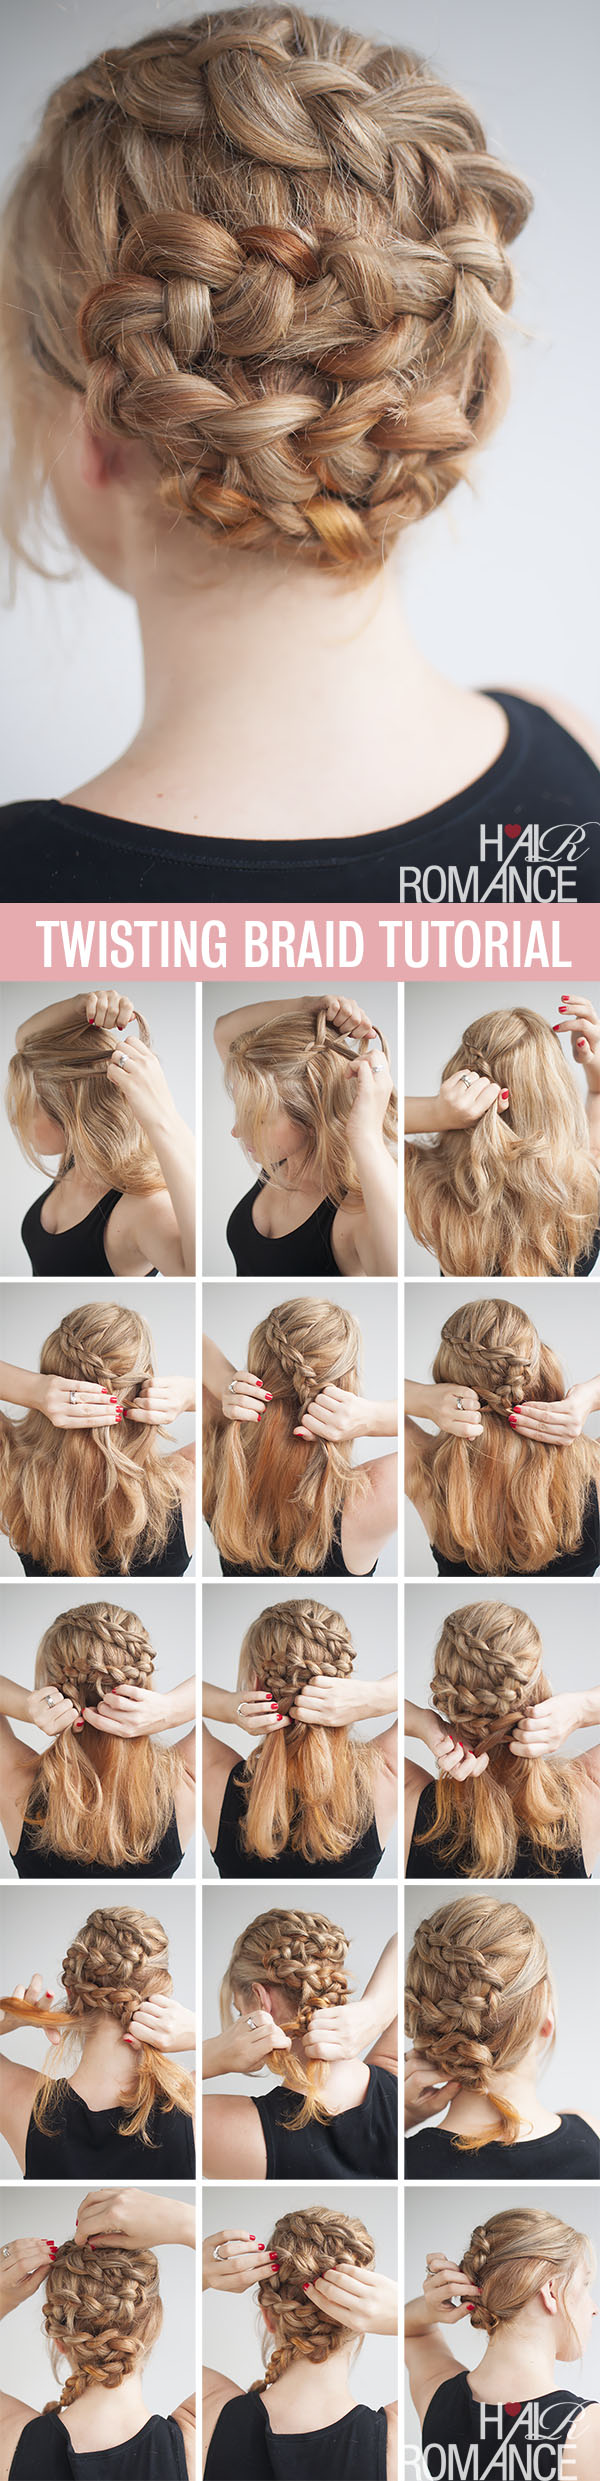 Hair Romance - Twisting braid hairstyle tutorial